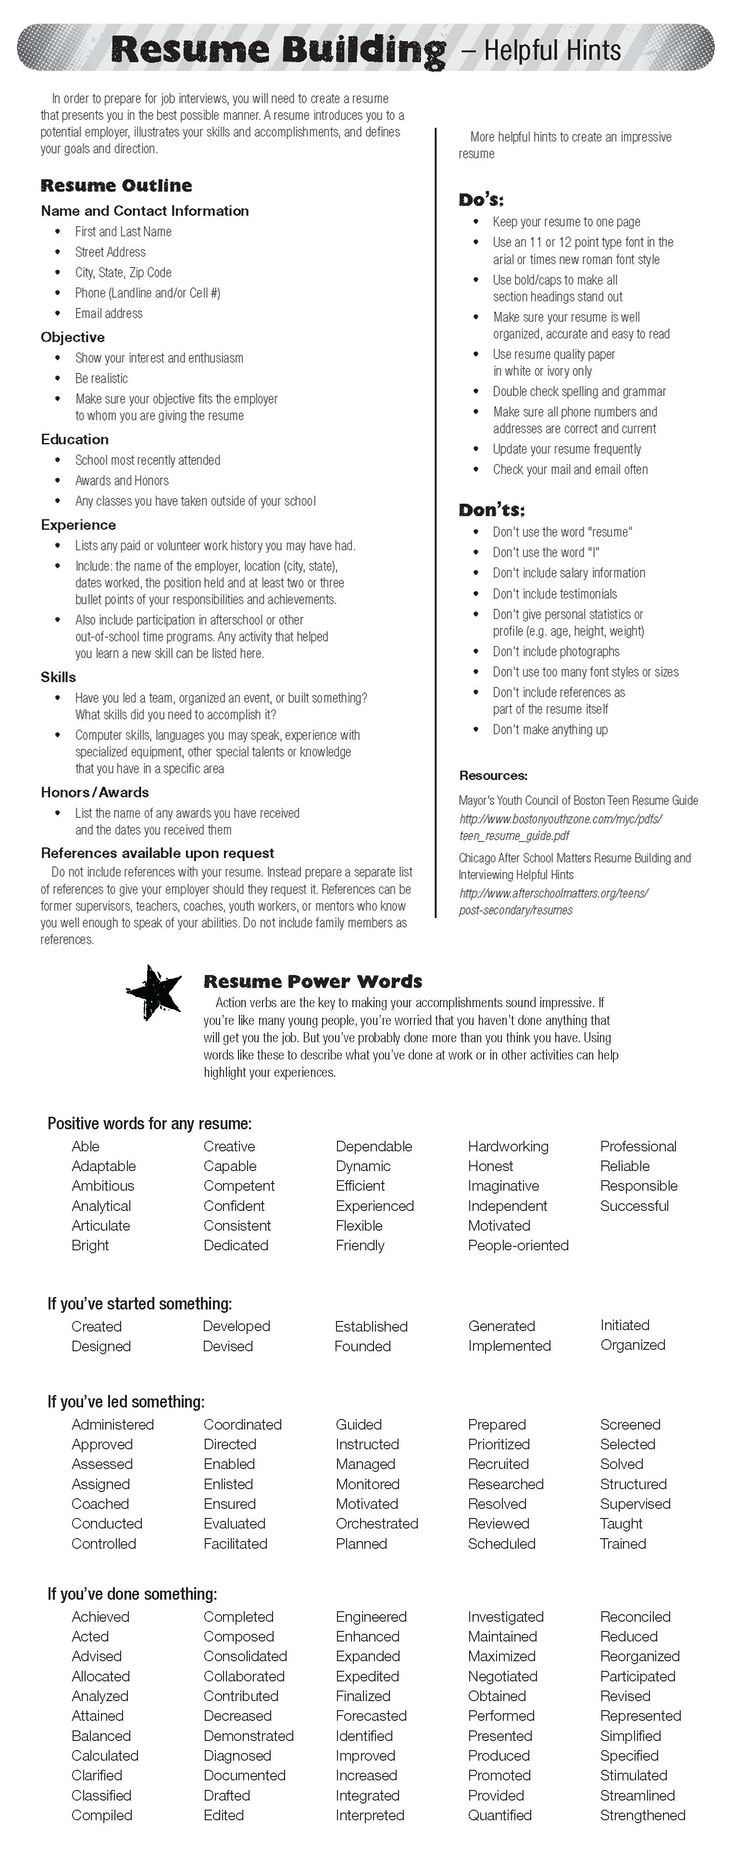 Opposenewapstandardsus  Pleasing  Ideas About Resume On Pinterest  Cv Format Resume Cv And  With Magnificent  Ideas About Resume On Pinterest  Cv Format Resume Cv And Resume Templates With Beauteous Optimal Resume Toledo Also How To Write An Objective In A Resume In Addition Human Resource Generalist Resume And Can Resumes Be  Pages As Well As Powerpoint Resume Additionally How Many Pages For A Resume From Pinterestcom With Opposenewapstandardsus  Magnificent  Ideas About Resume On Pinterest  Cv Format Resume Cv And  With Beauteous  Ideas About Resume On Pinterest  Cv Format Resume Cv And Resume Templates And Pleasing Optimal Resume Toledo Also How To Write An Objective In A Resume In Addition Human Resource Generalist Resume From Pinterestcom